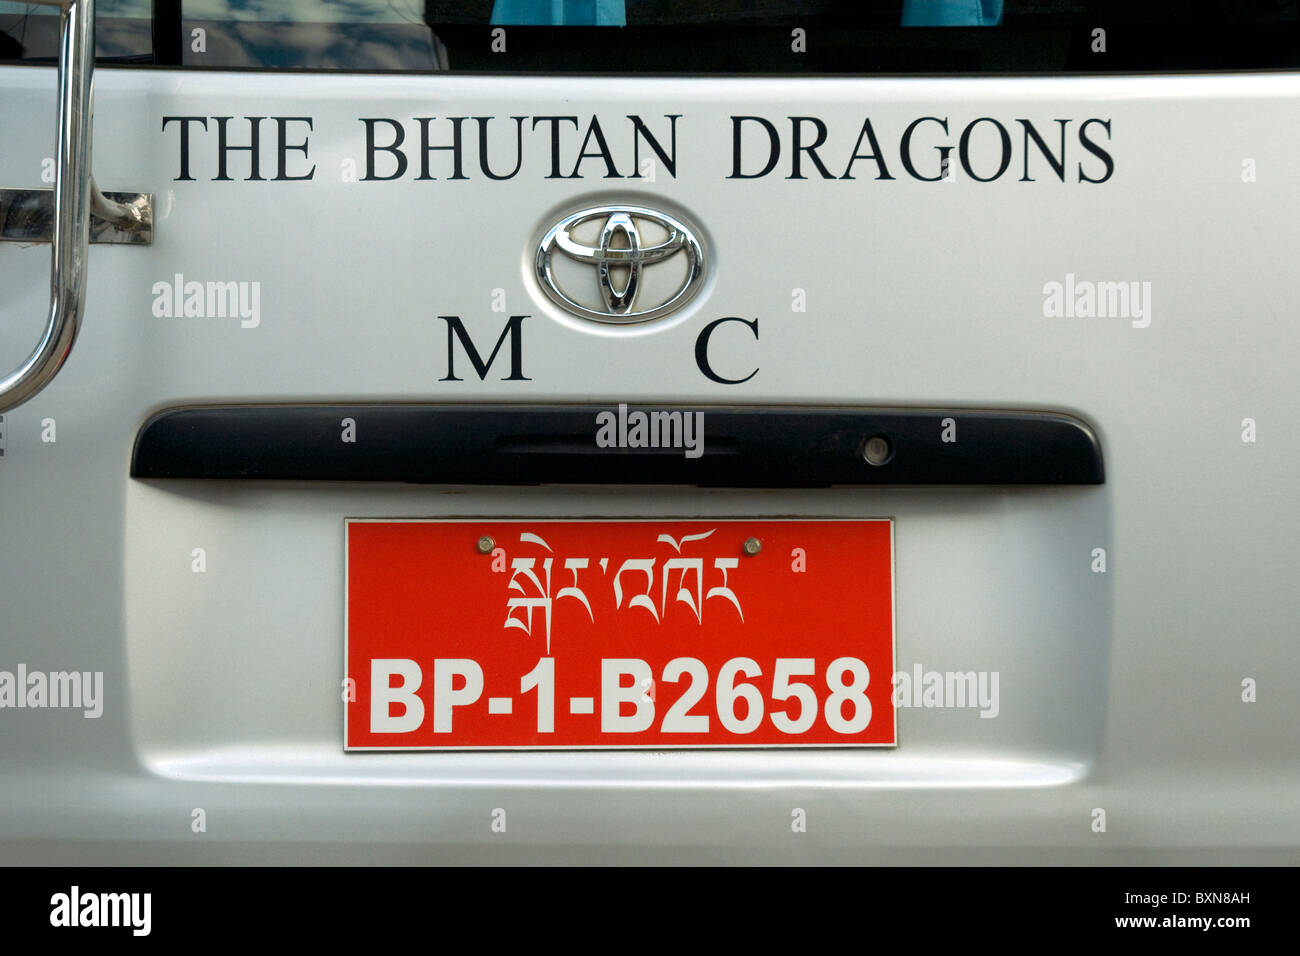 Dragons are Bhutan's national symbol but this car in a Paro street is promoting a local motor cycle club - Stock Image